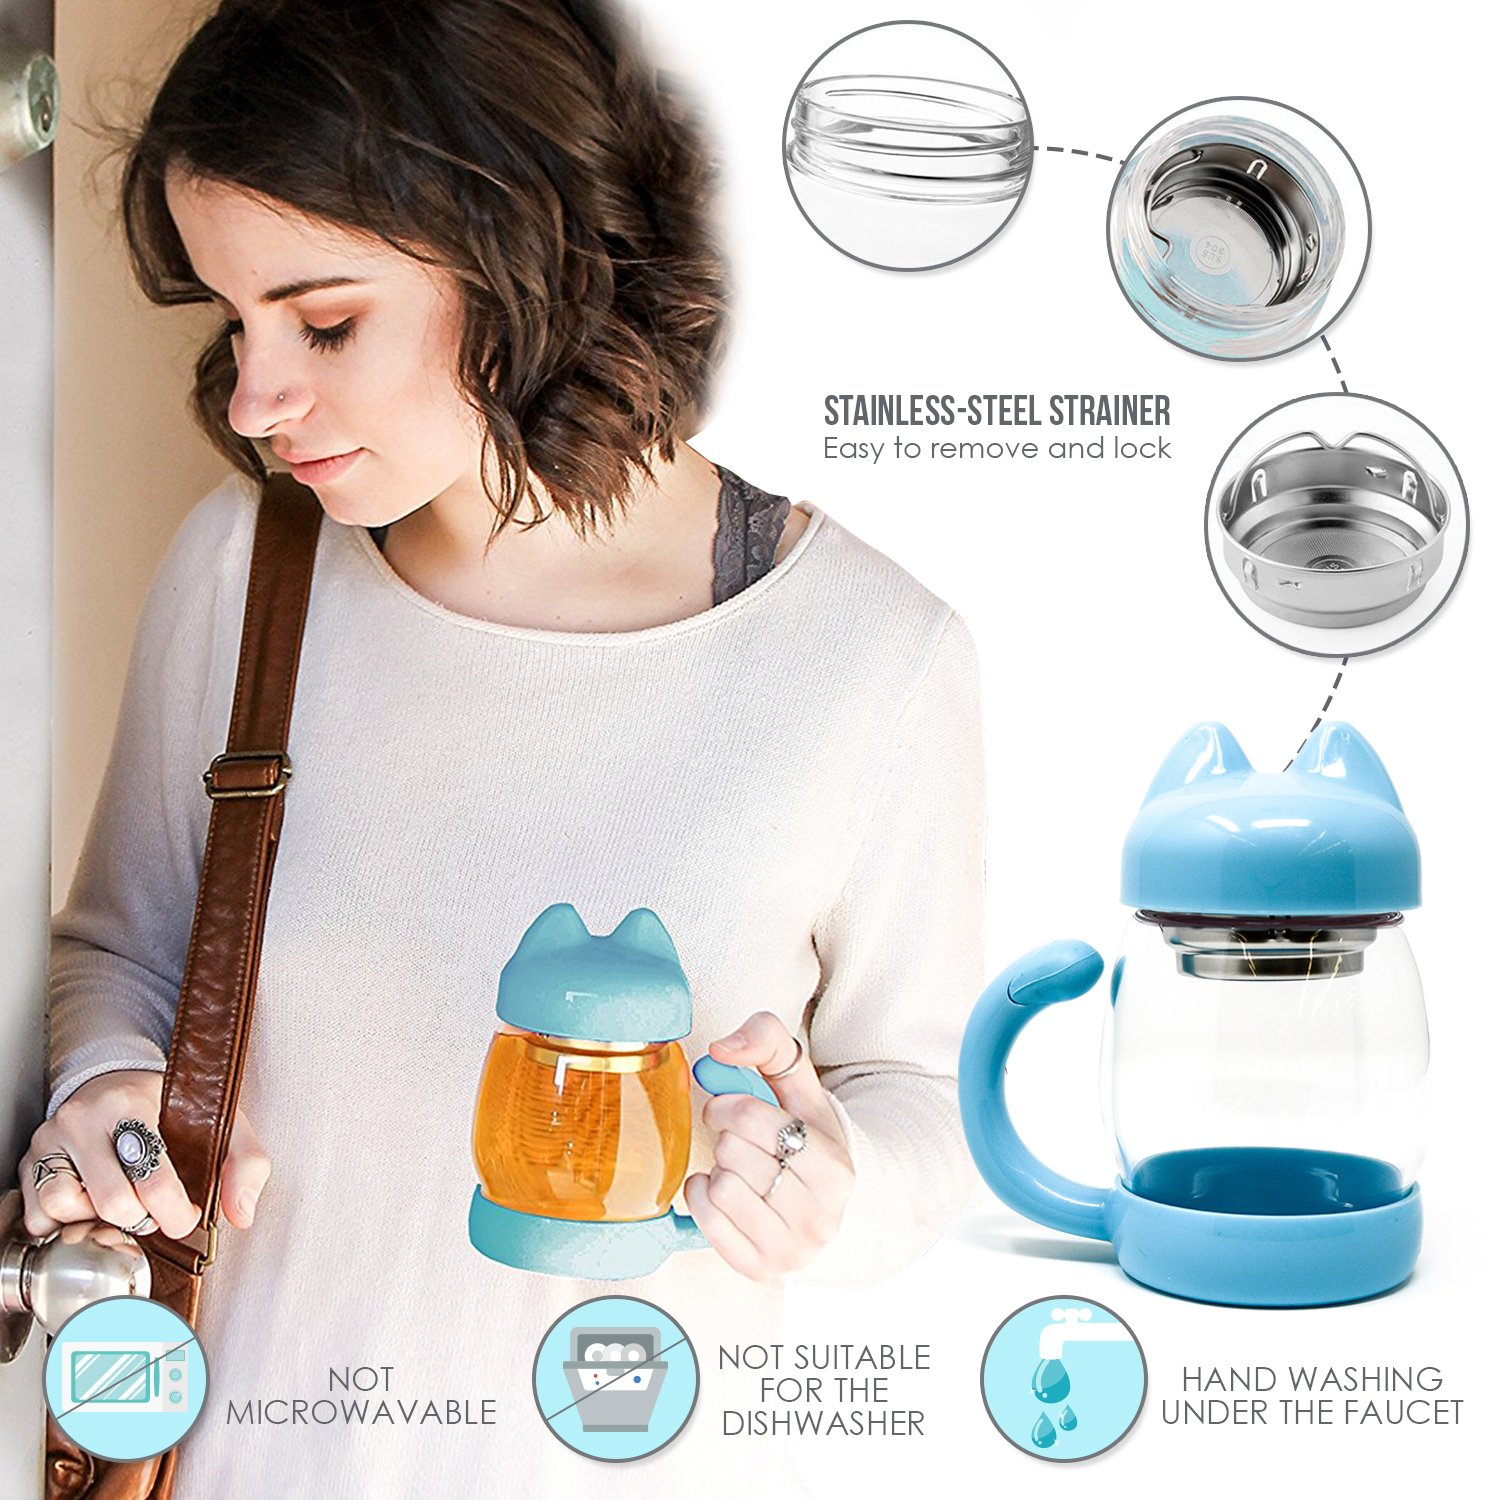 Cute Cat Tea Mug Cup – With Strainer/Infuser - Cat Lover Gifts for Cat Lovers and Women - Cat Themed Stuff Items Presents Things Gift - Portable Blue Travel Glass Mugs and Cups - Kitty Mug Lid 14oz by Adeson (Image #6)